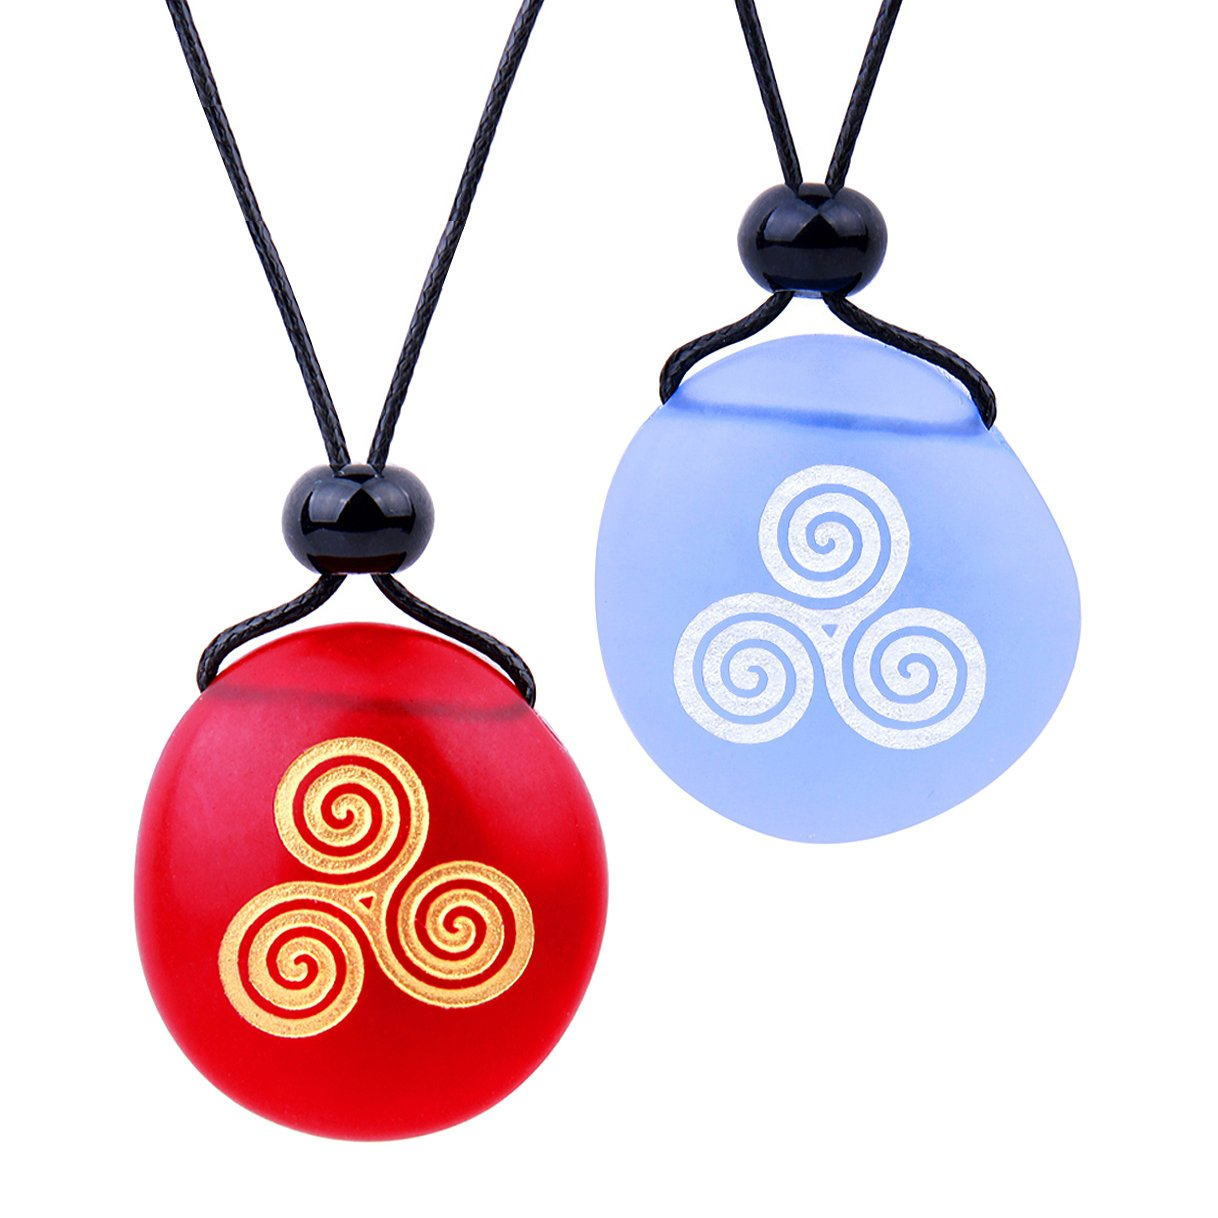 Frosted Sea Glass Stones Spirit of Life Goddess Knot Love Couples BFF Amulets Sky Blue Red Necklaces